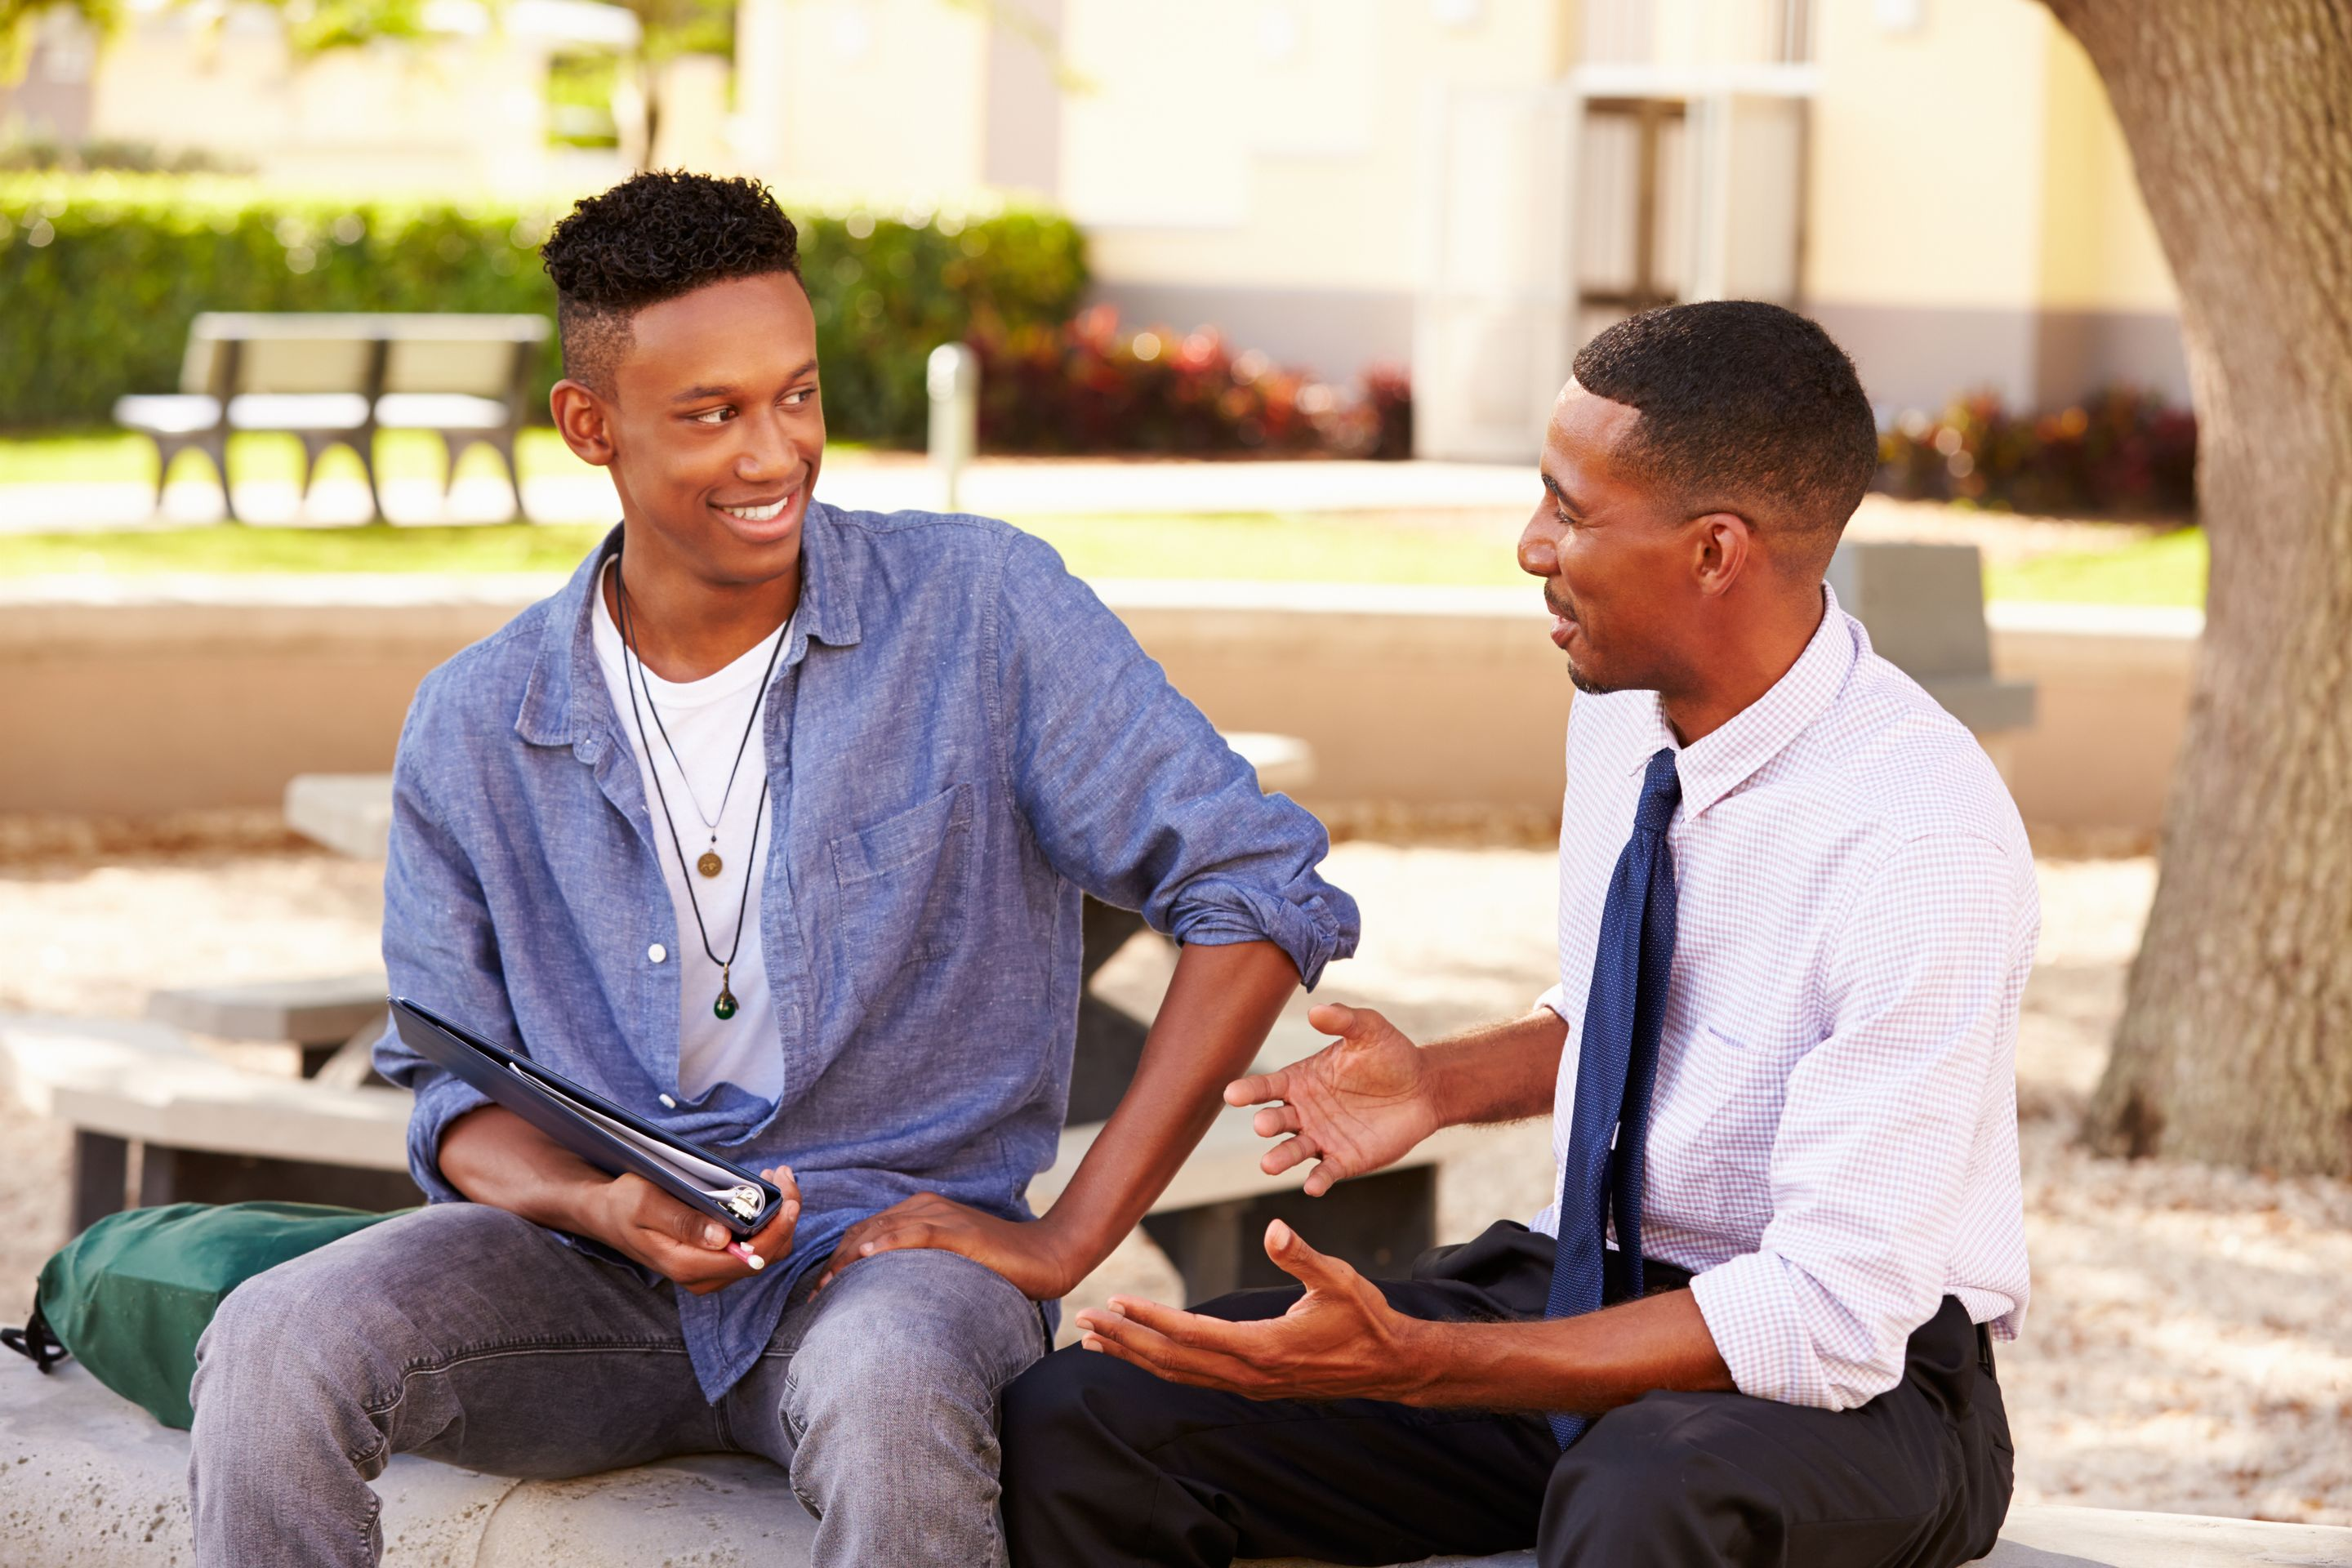 A teacher talking to his student outdoors, both smiling